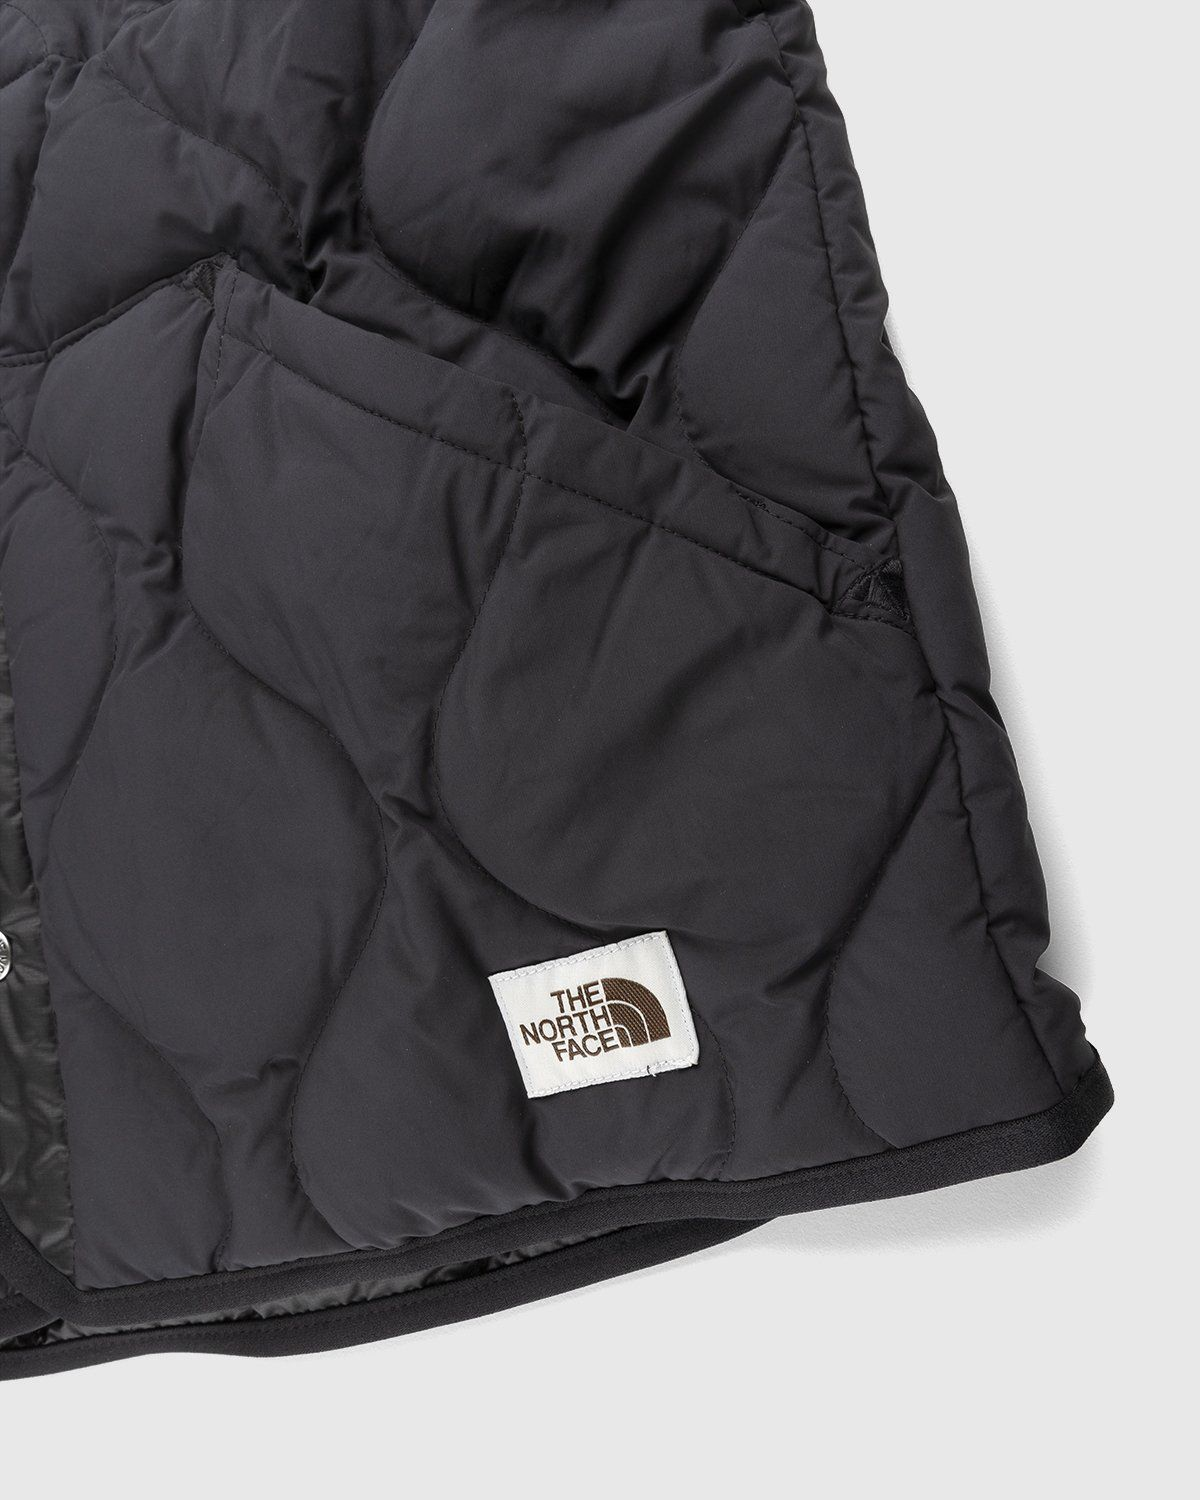 The North Face – M66 Down Jacket Black - Image 4